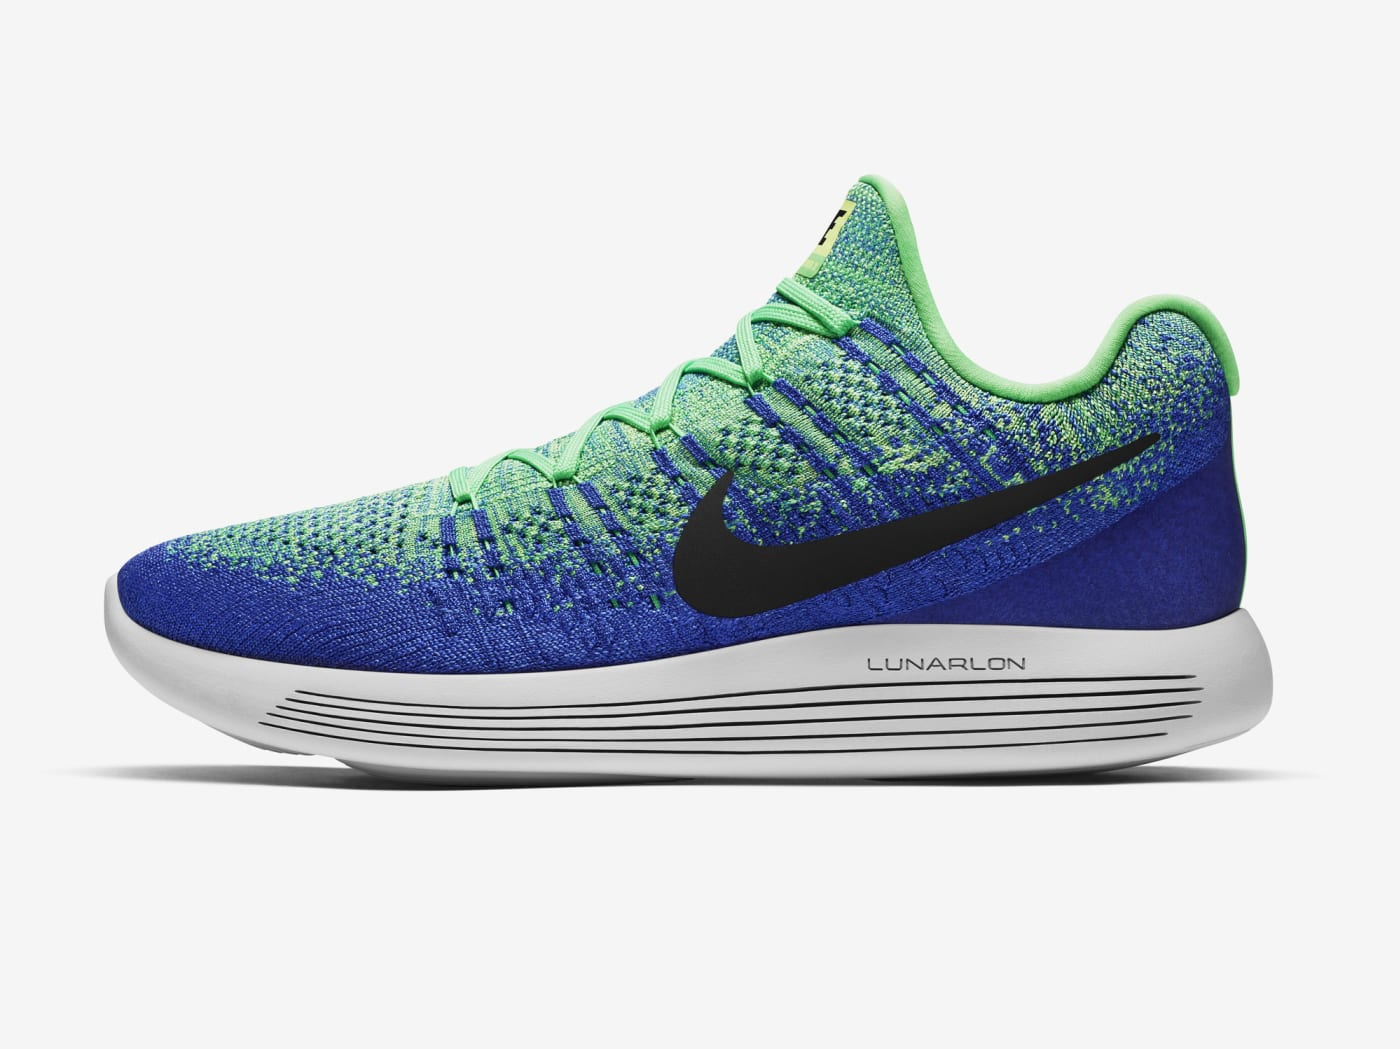 Nike Releases The LunarEpic FlyKnit 2